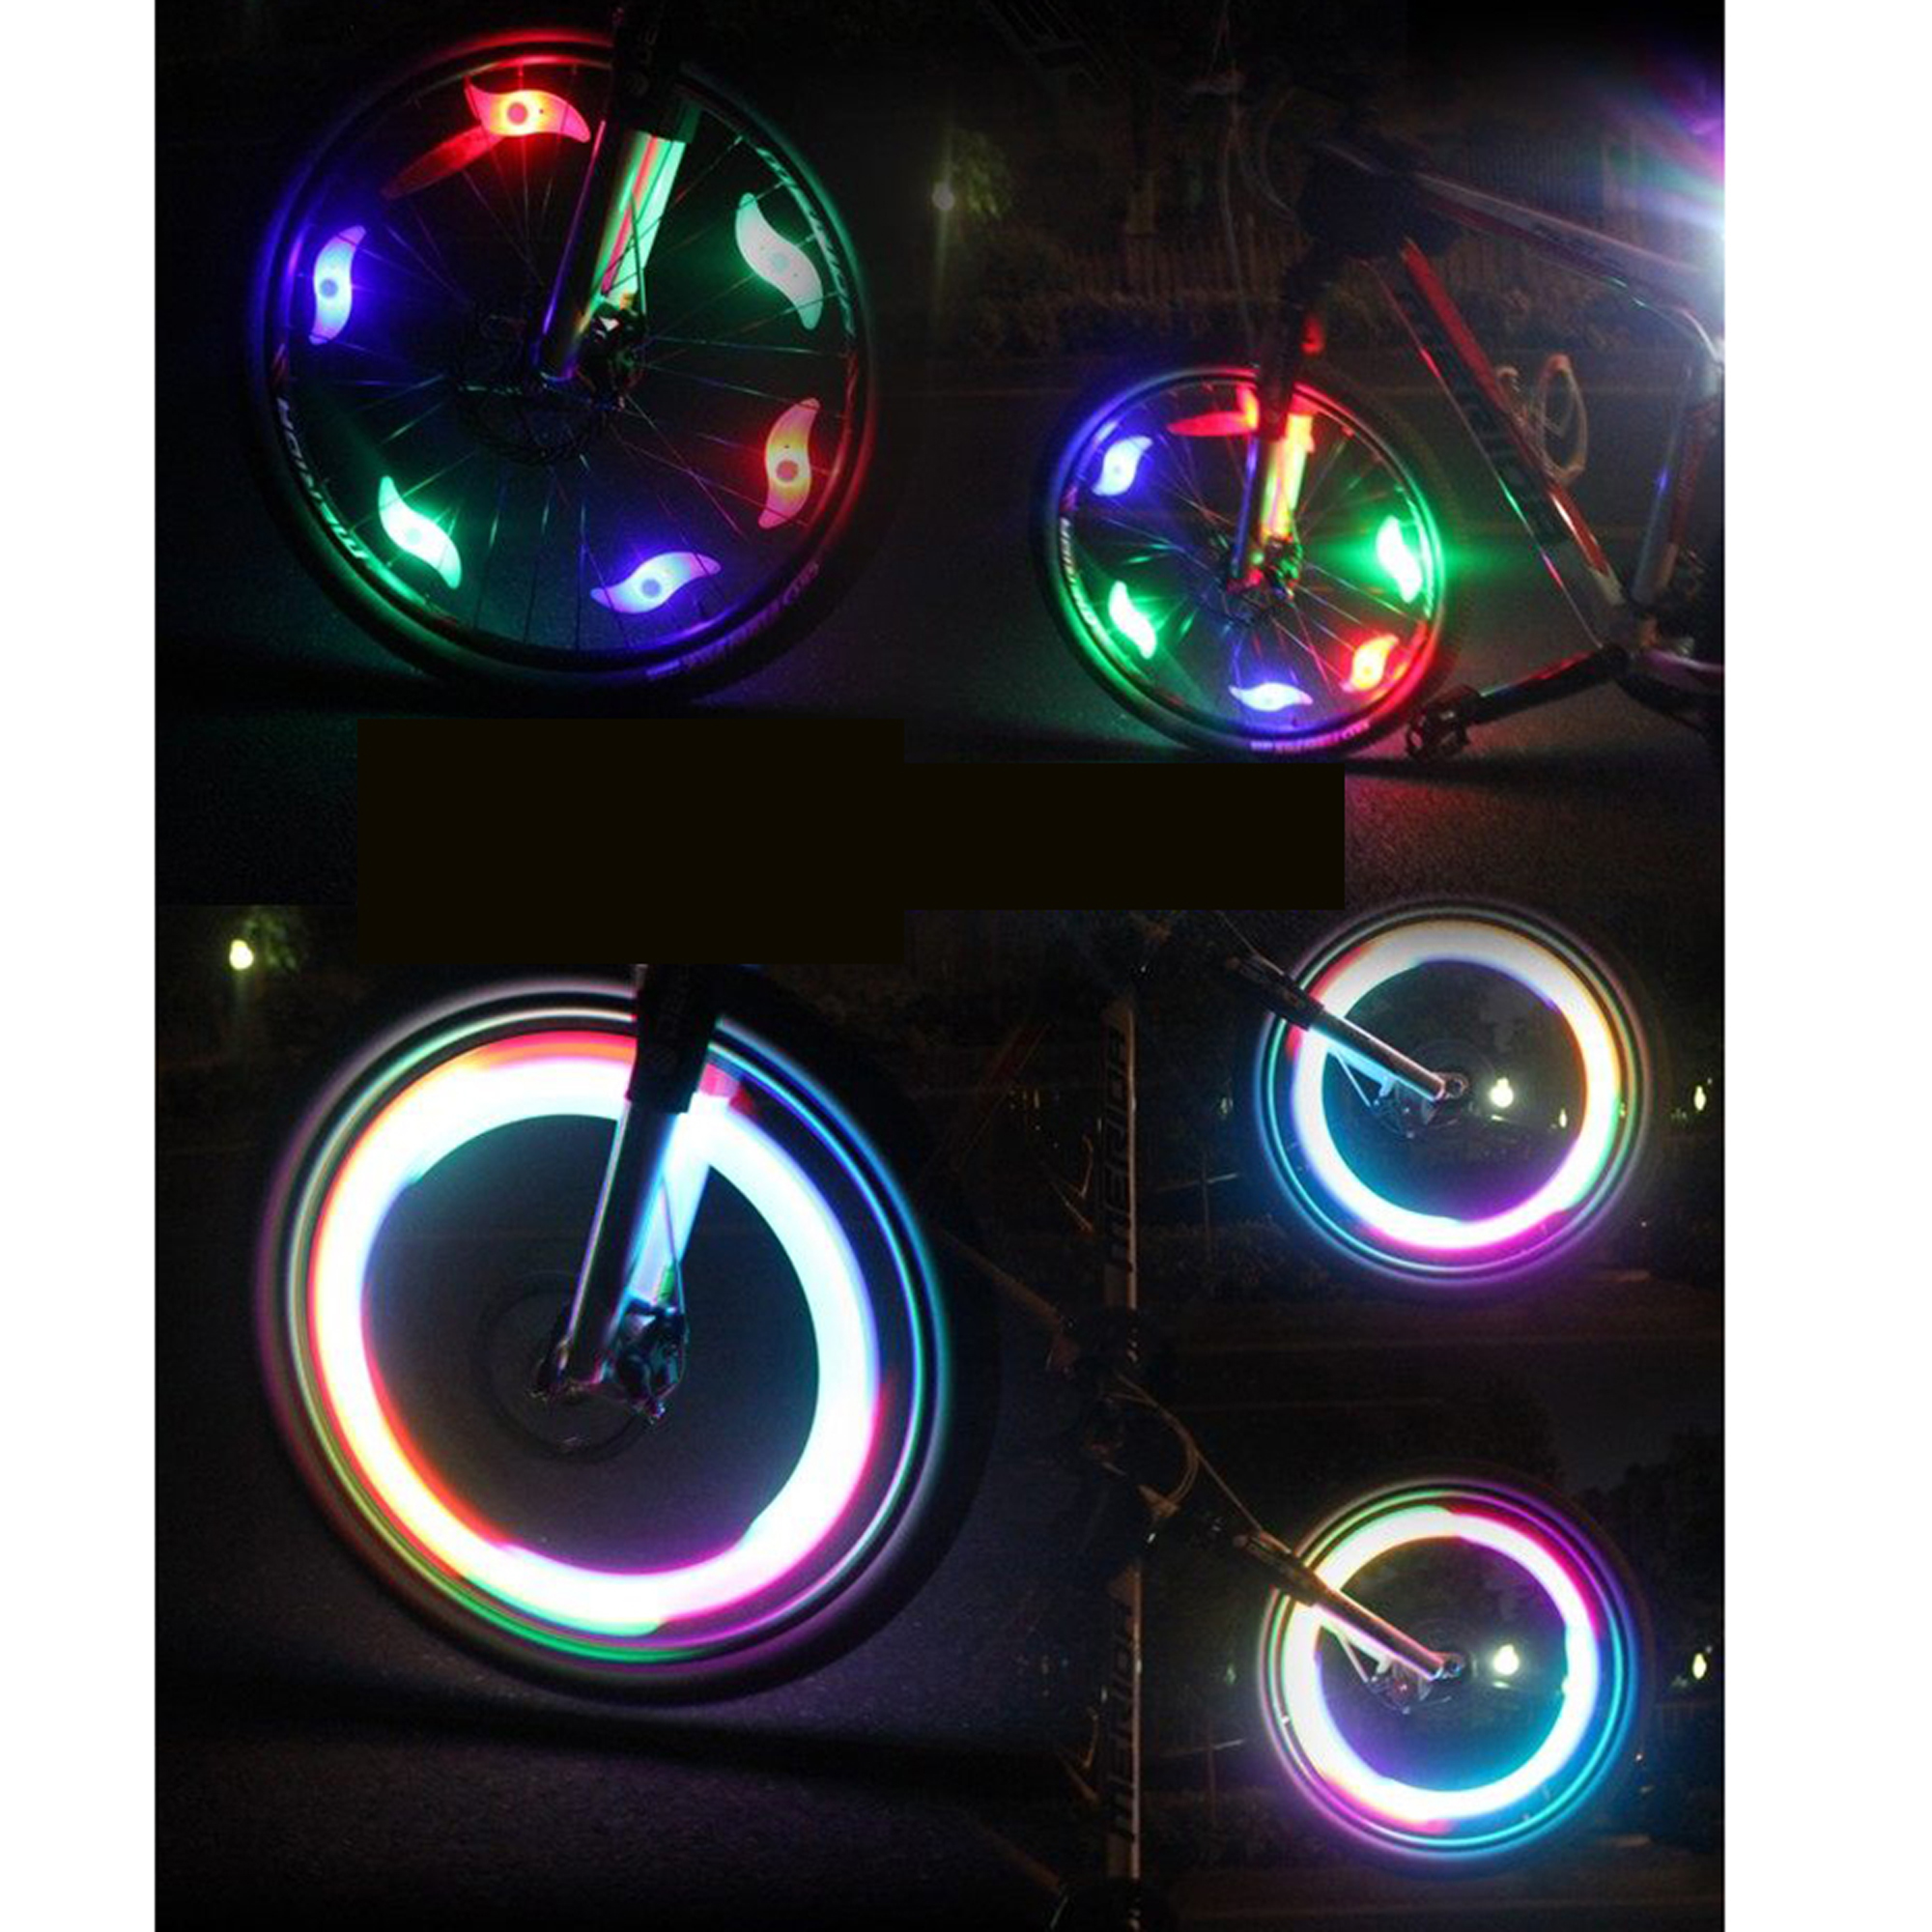 AGPtek Multi-color 6pcs Flexible Waterproof Silicone Bike Light Bicycle Cycling Spoke Wire Tire Tyre Silicone LED Wheel